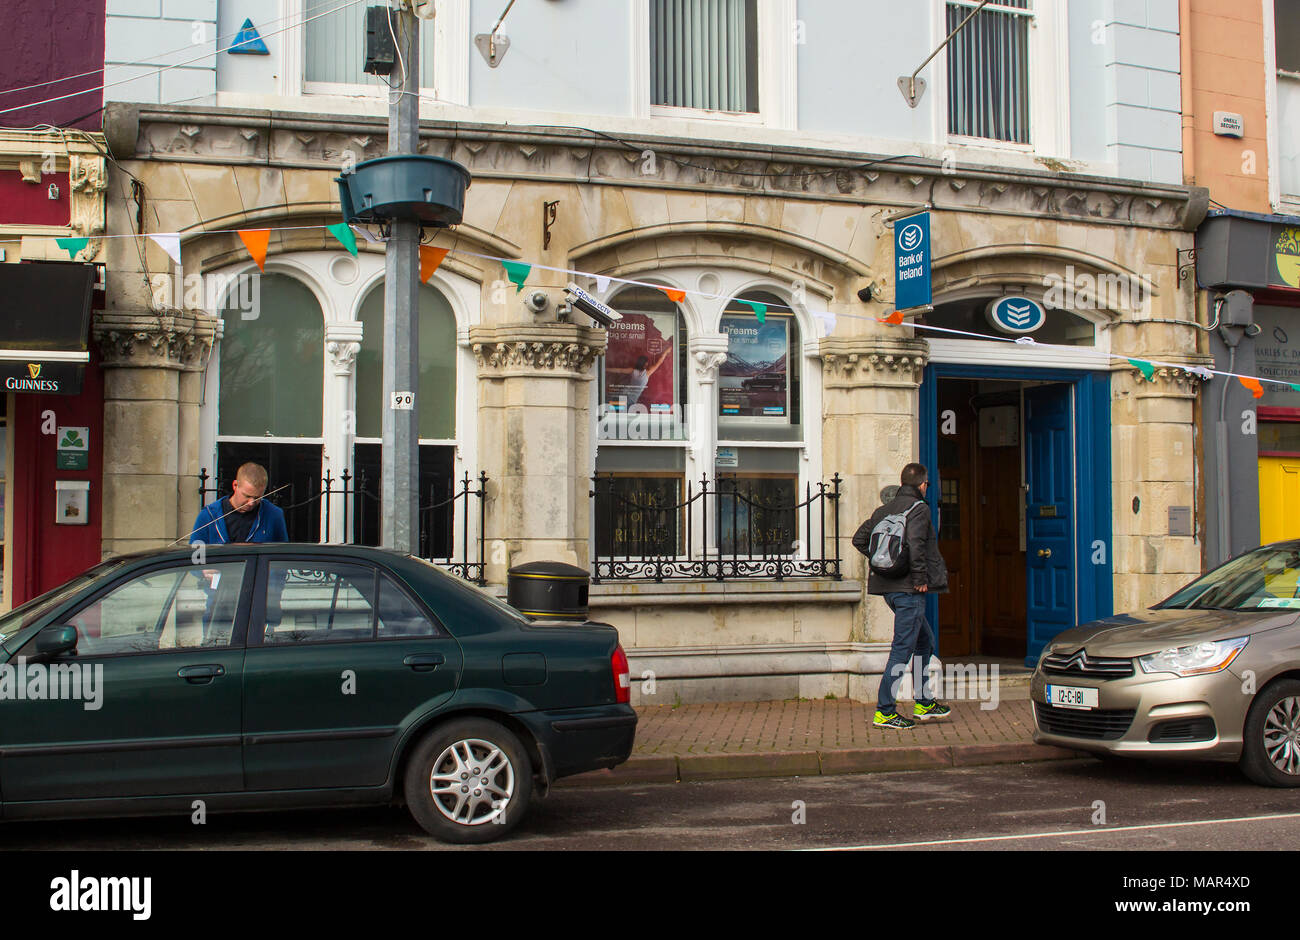 A branch of the Bank of Ireland on the main street in Cobh in County Cork Ireland - Stock Image